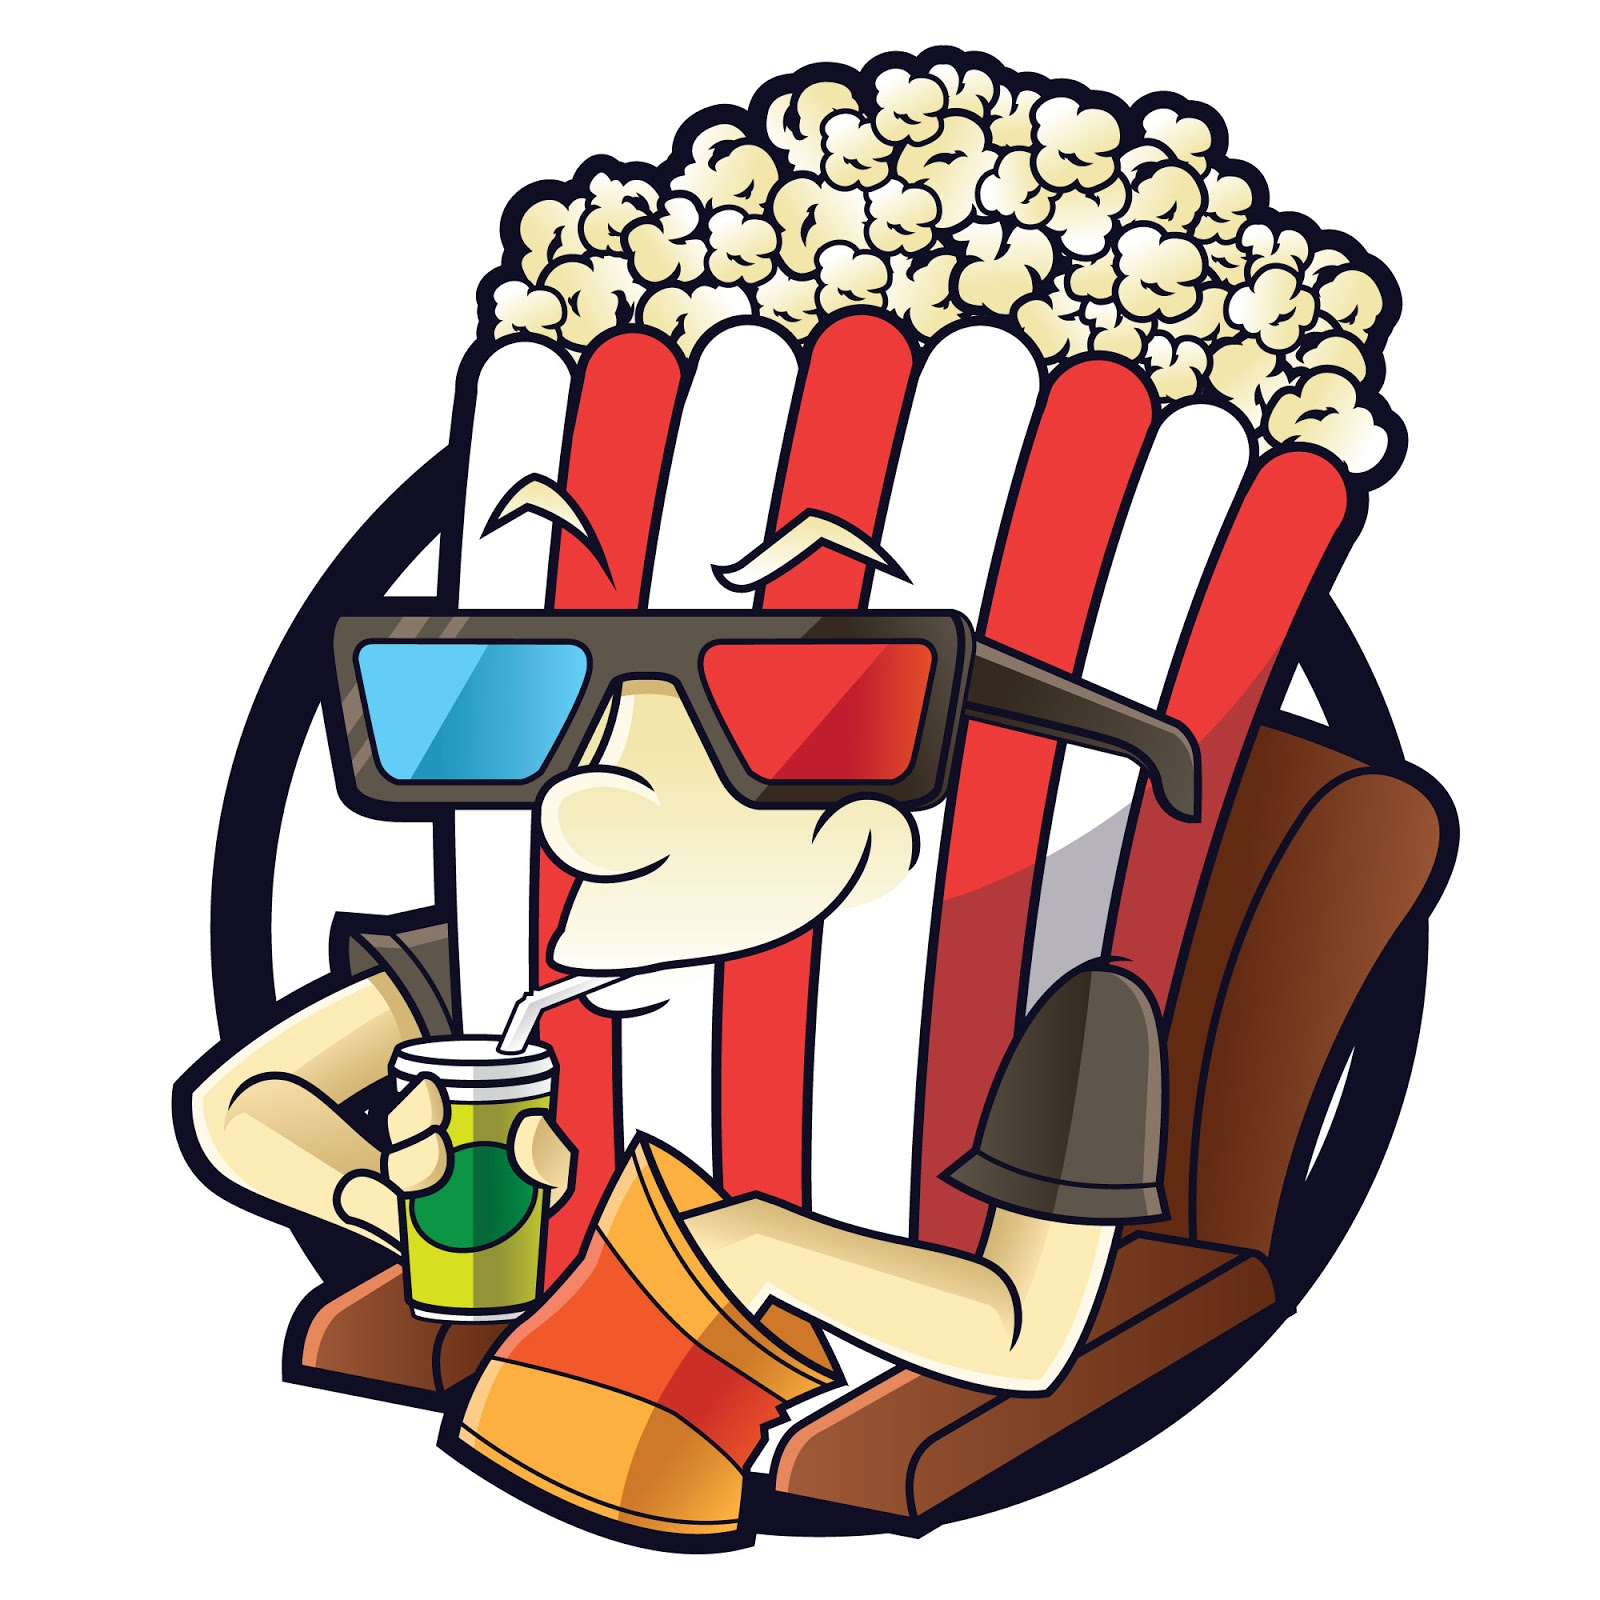 Popcorn Guy Free Download Vector CDR, AI, EPS and PNG Formats